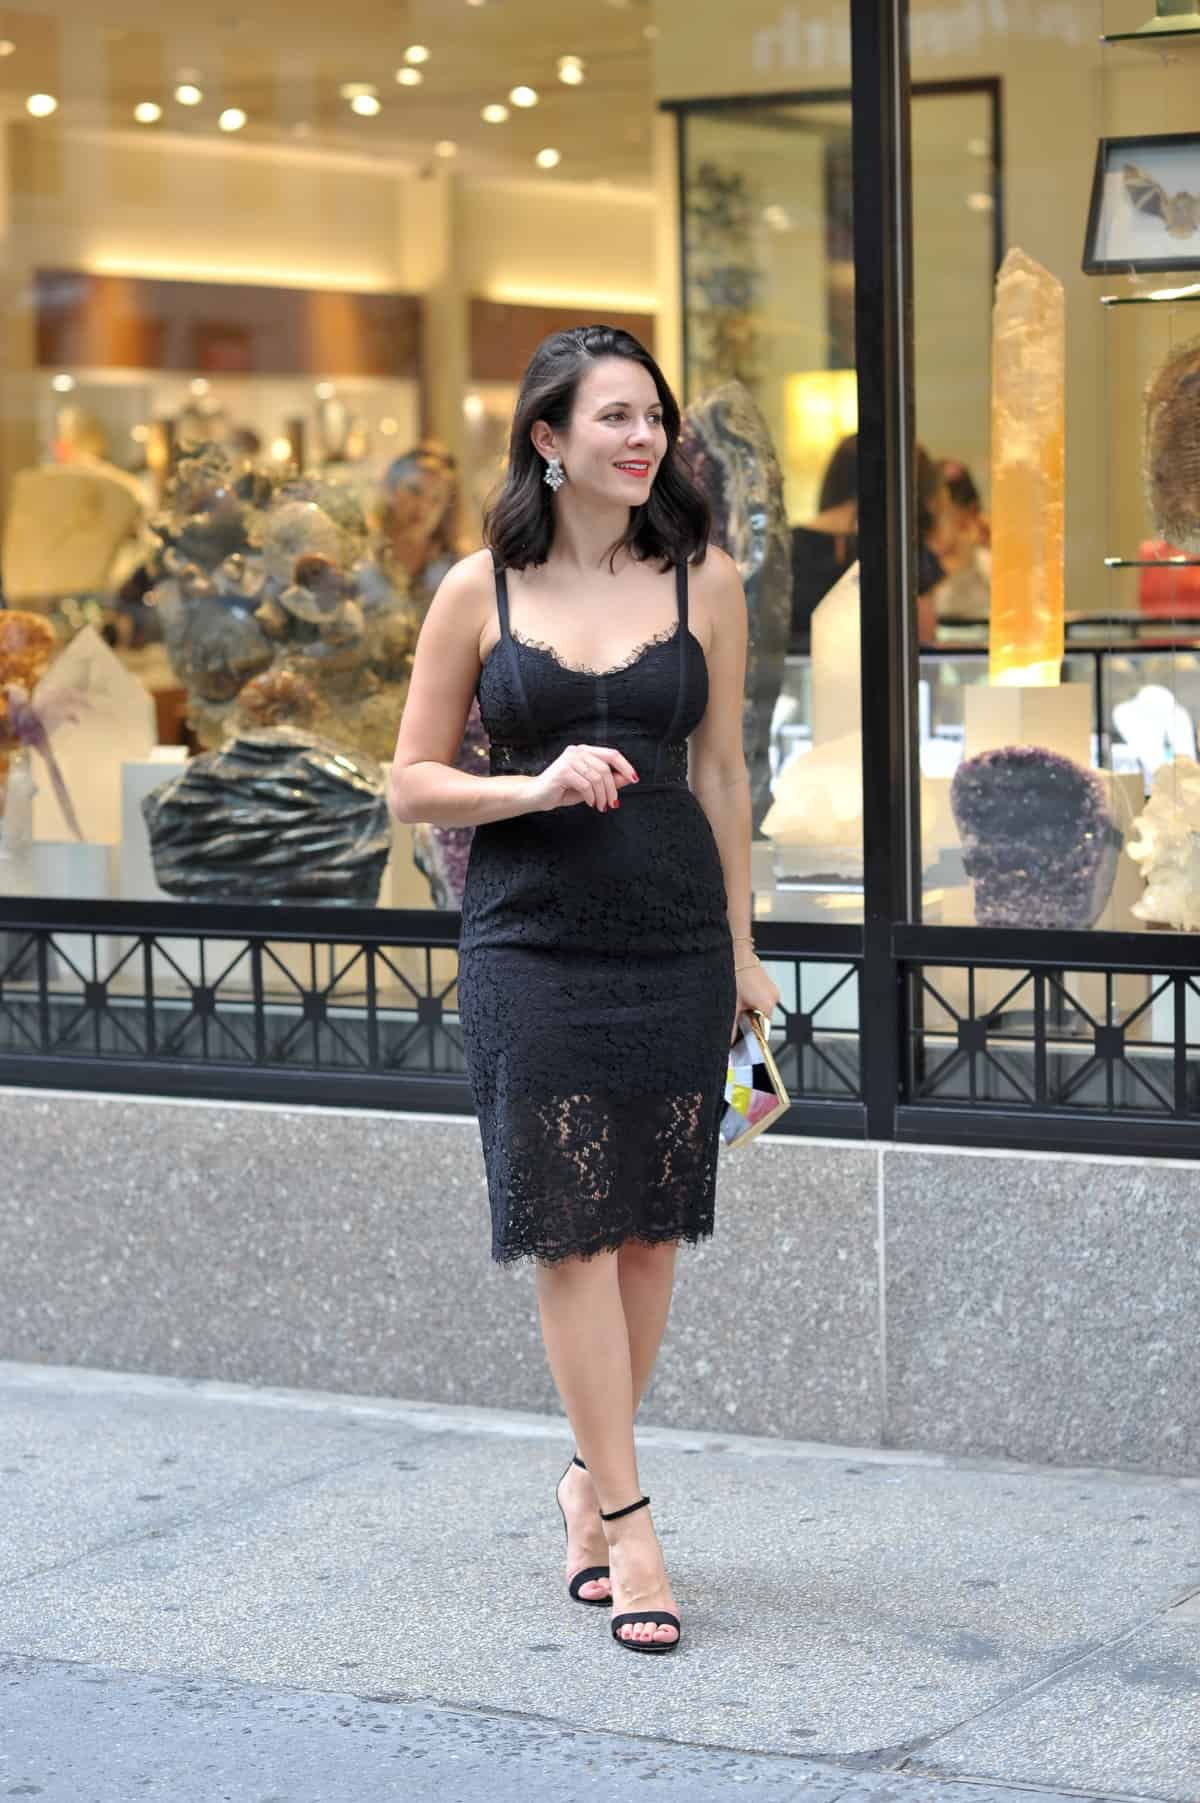 affordable black tie dresses, black lace dresses - My Style Vita @mystylevita